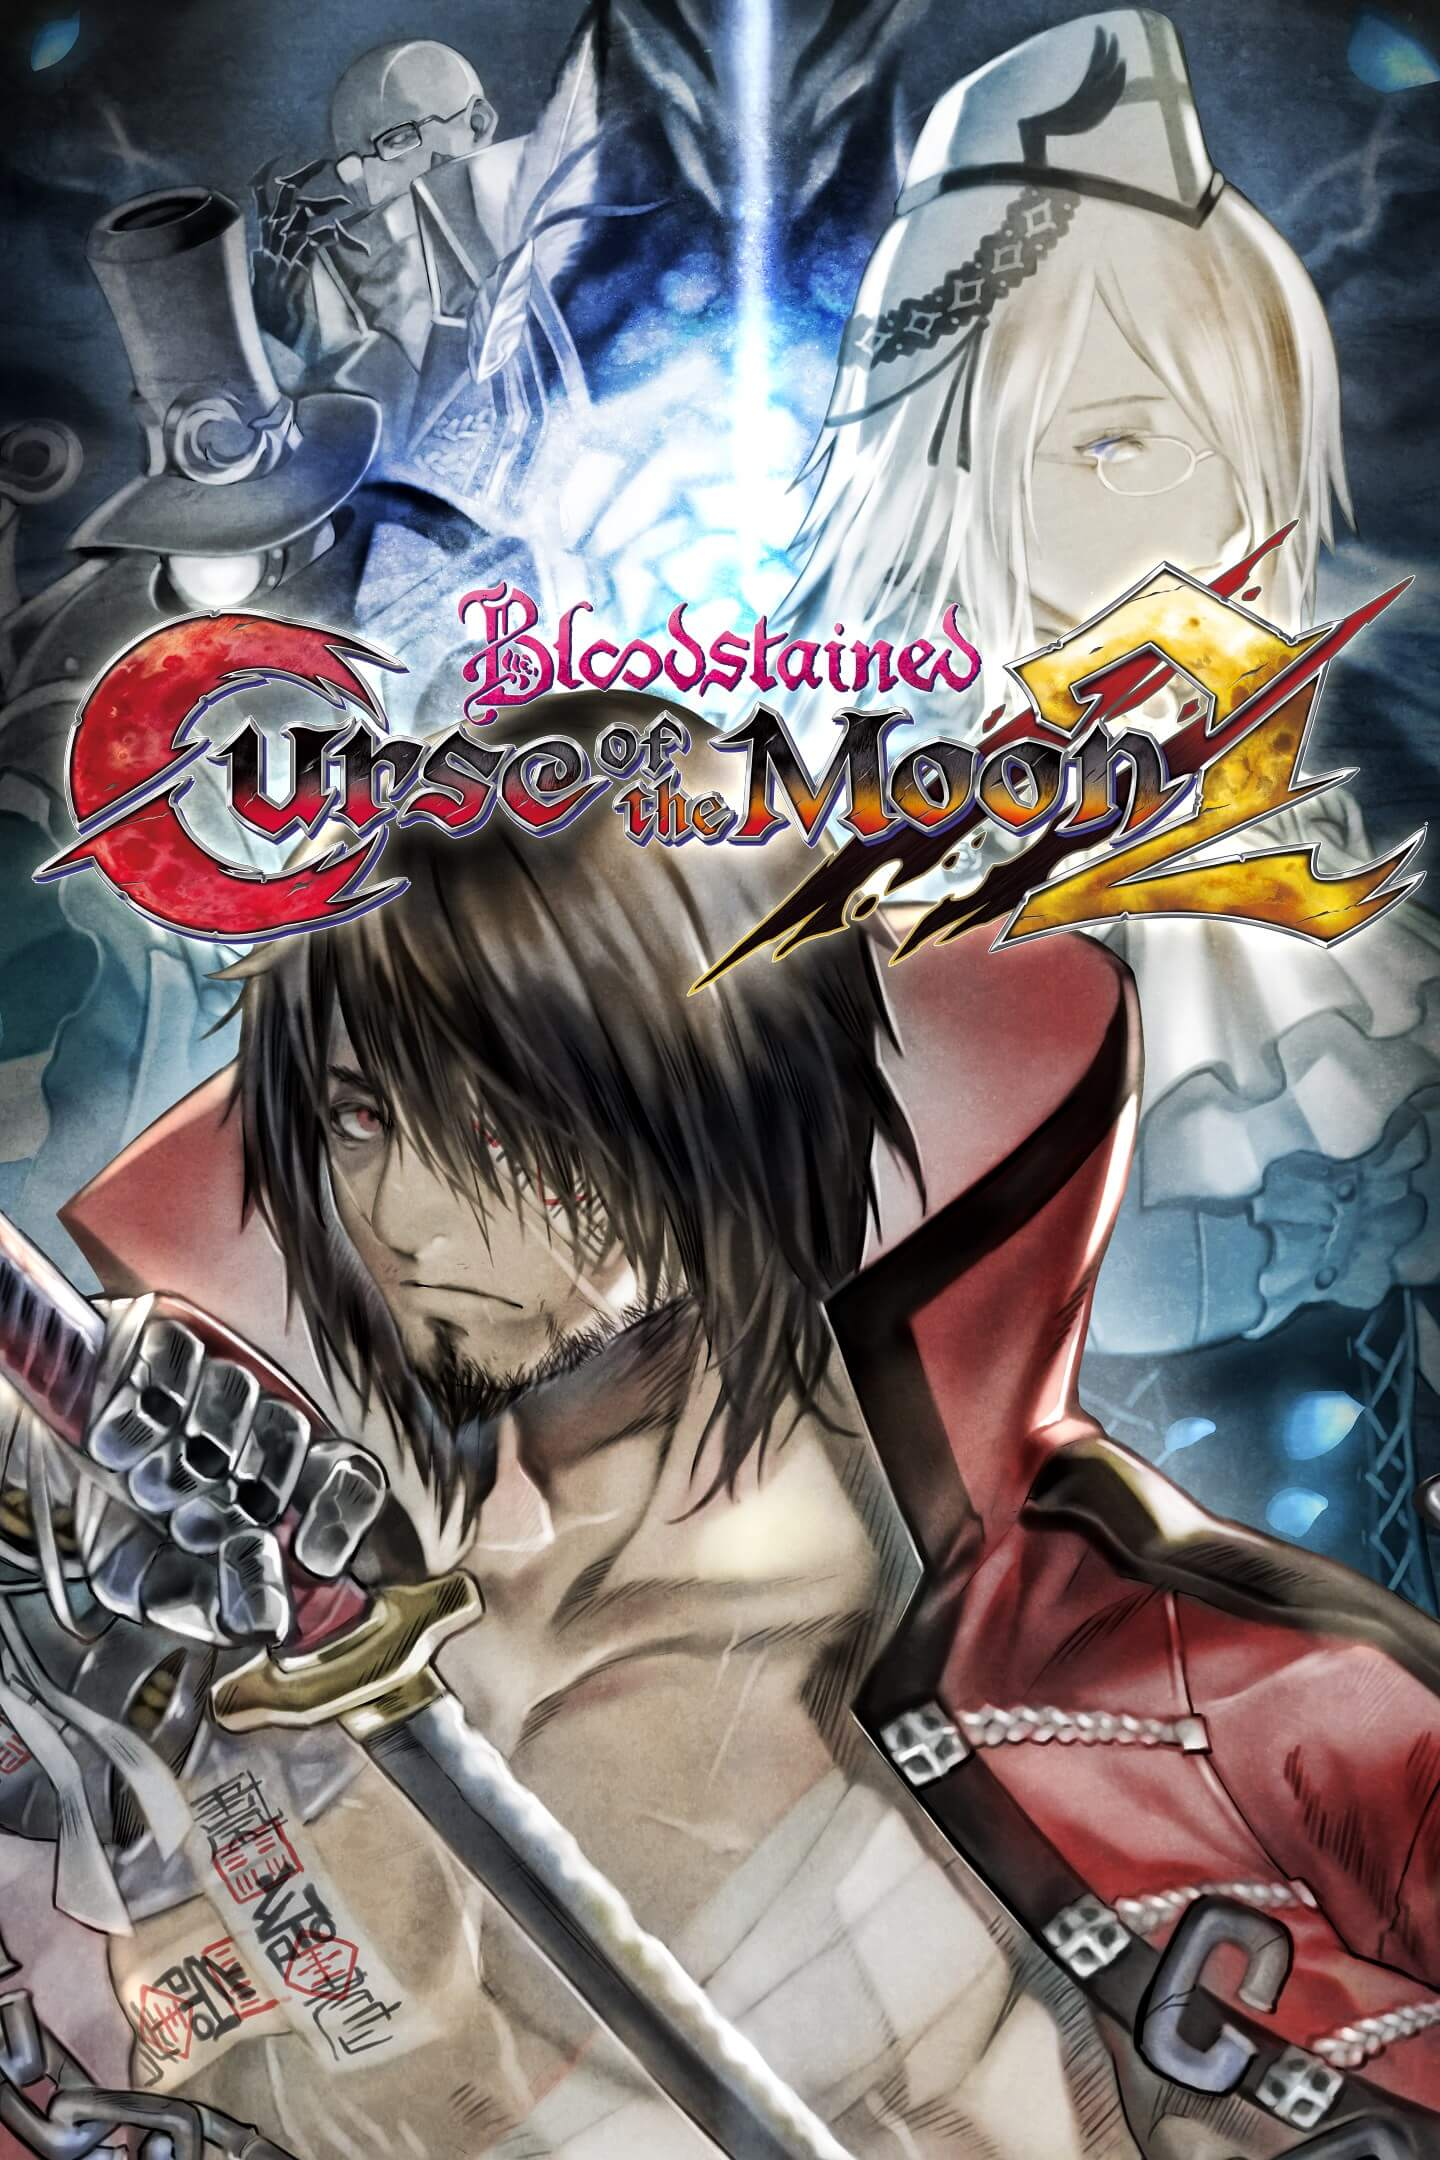 https://img5.downloadha.com/hosein/files/2020/07/Bloodstained-Curse-of-the-Moon-2-pc-cover-large.jpg